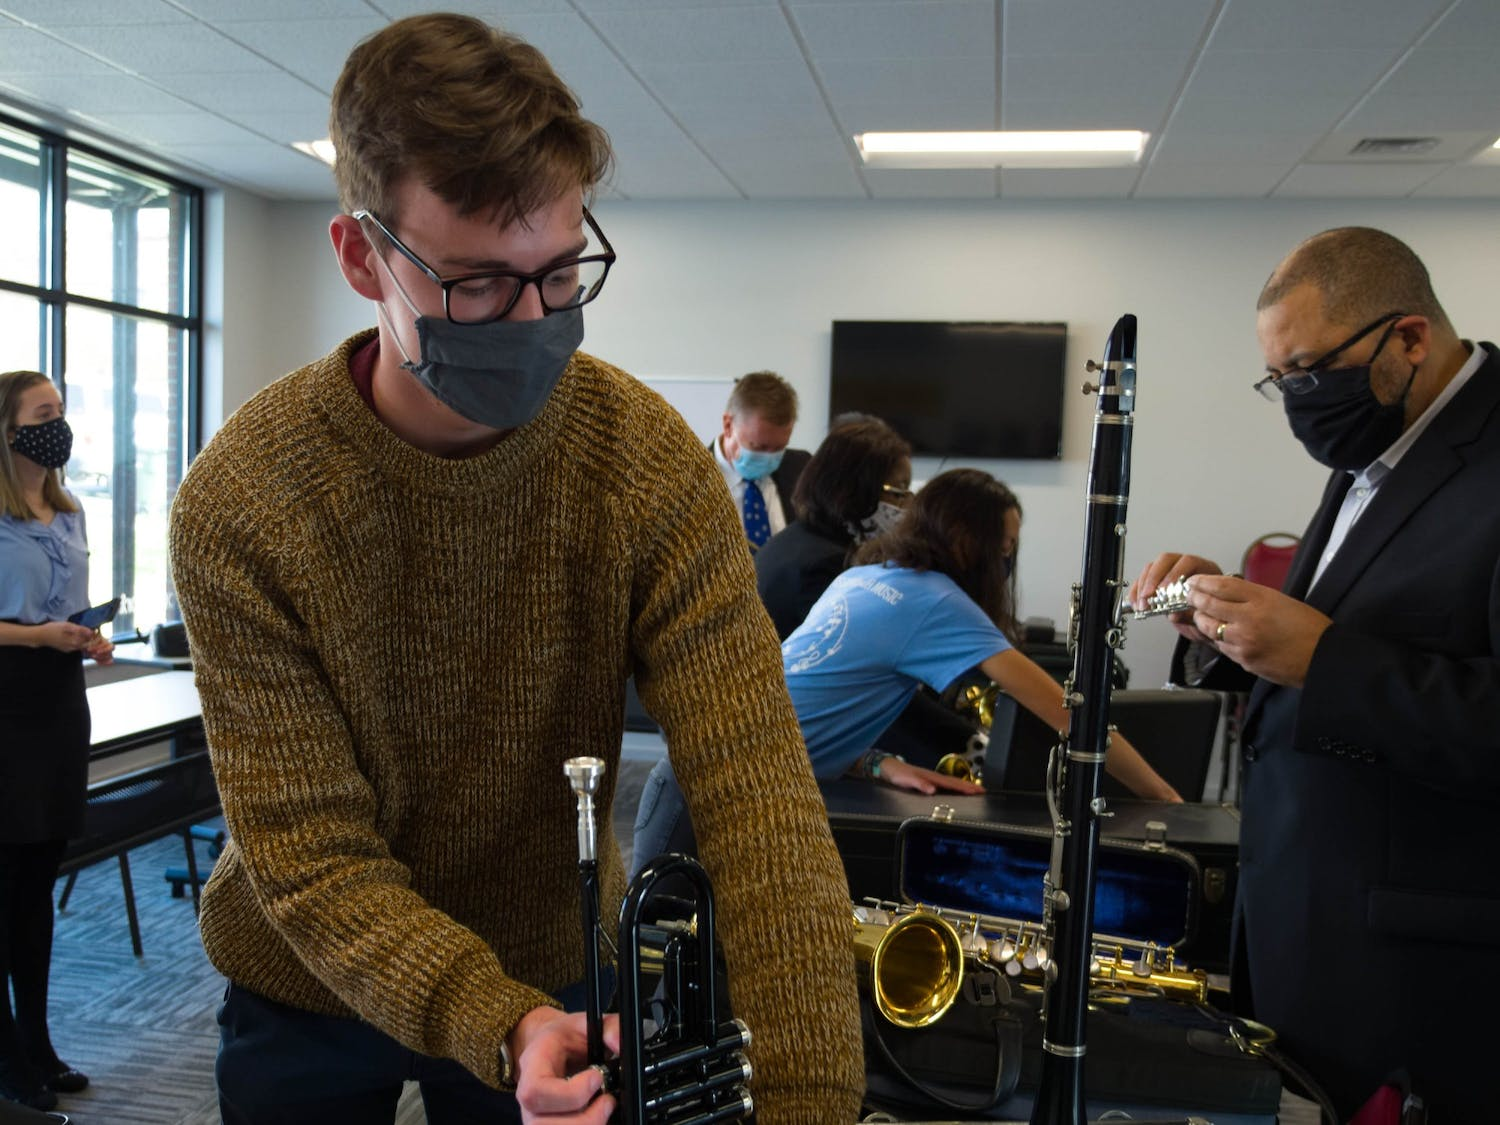 Junior Luke Cain (Economics and Political Science), a volunteer at Musical Empowerment, moves a donated trumpet in the YouthWorx conference room on Wednesday, Dec. 9, 2020.